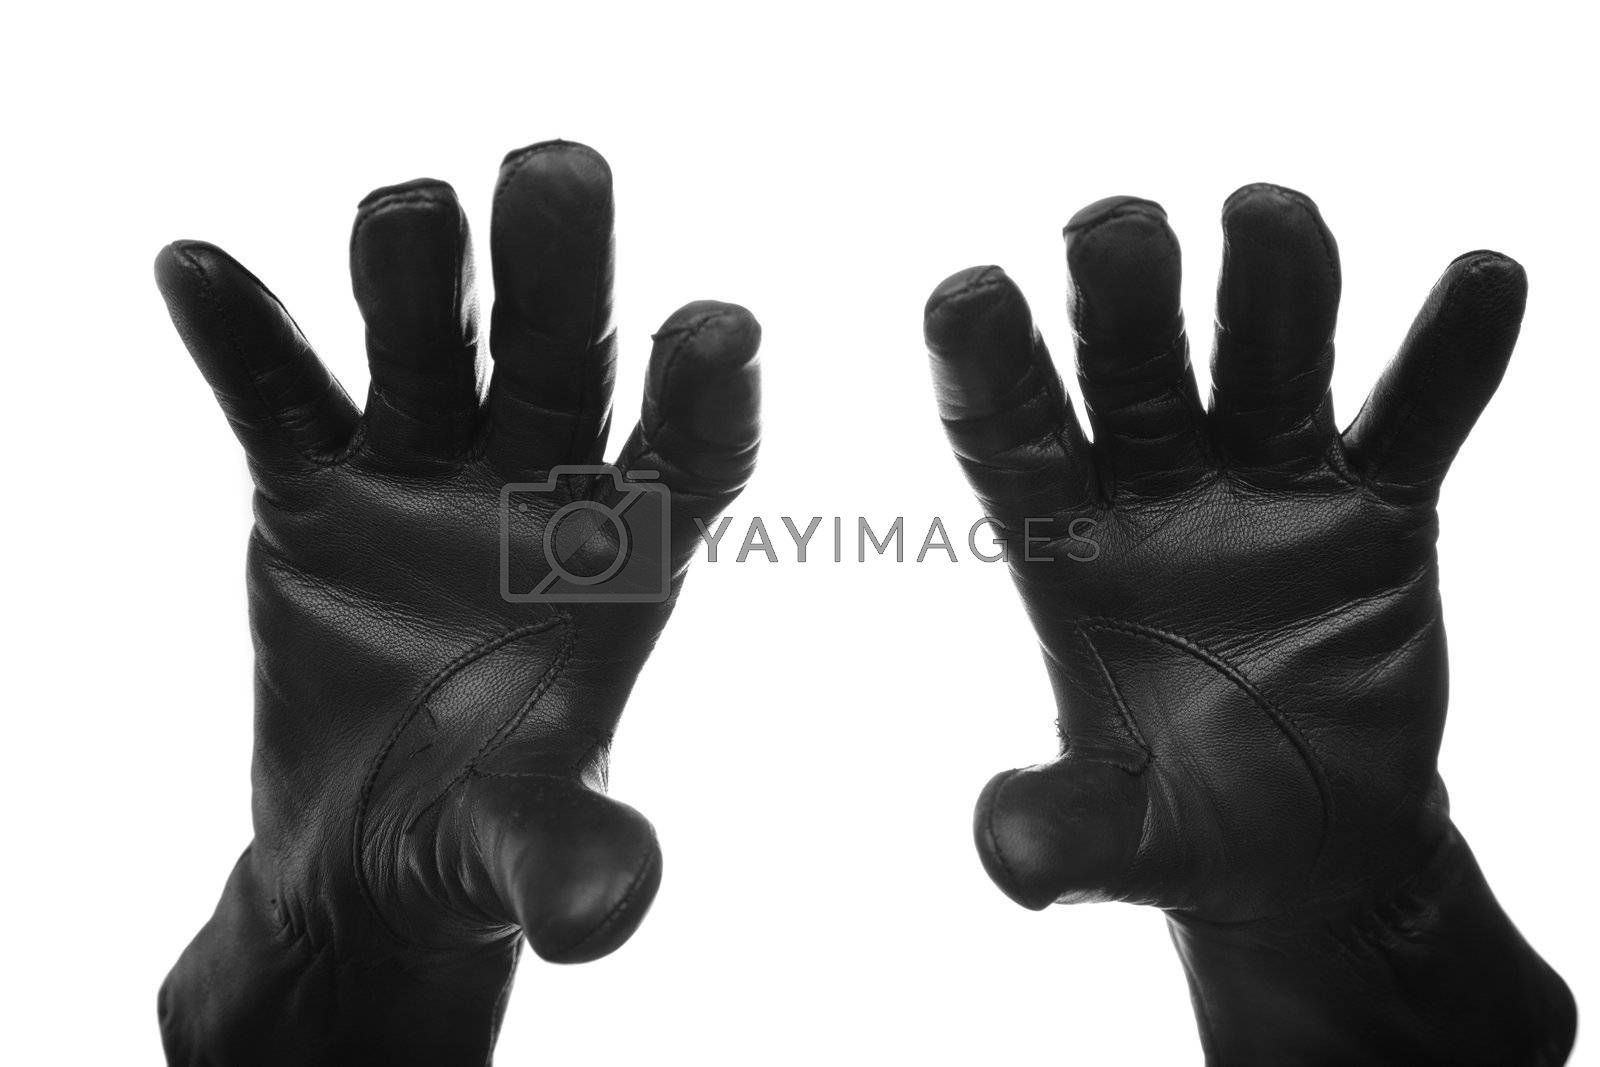 Hands of the criminal person in black leather gloves